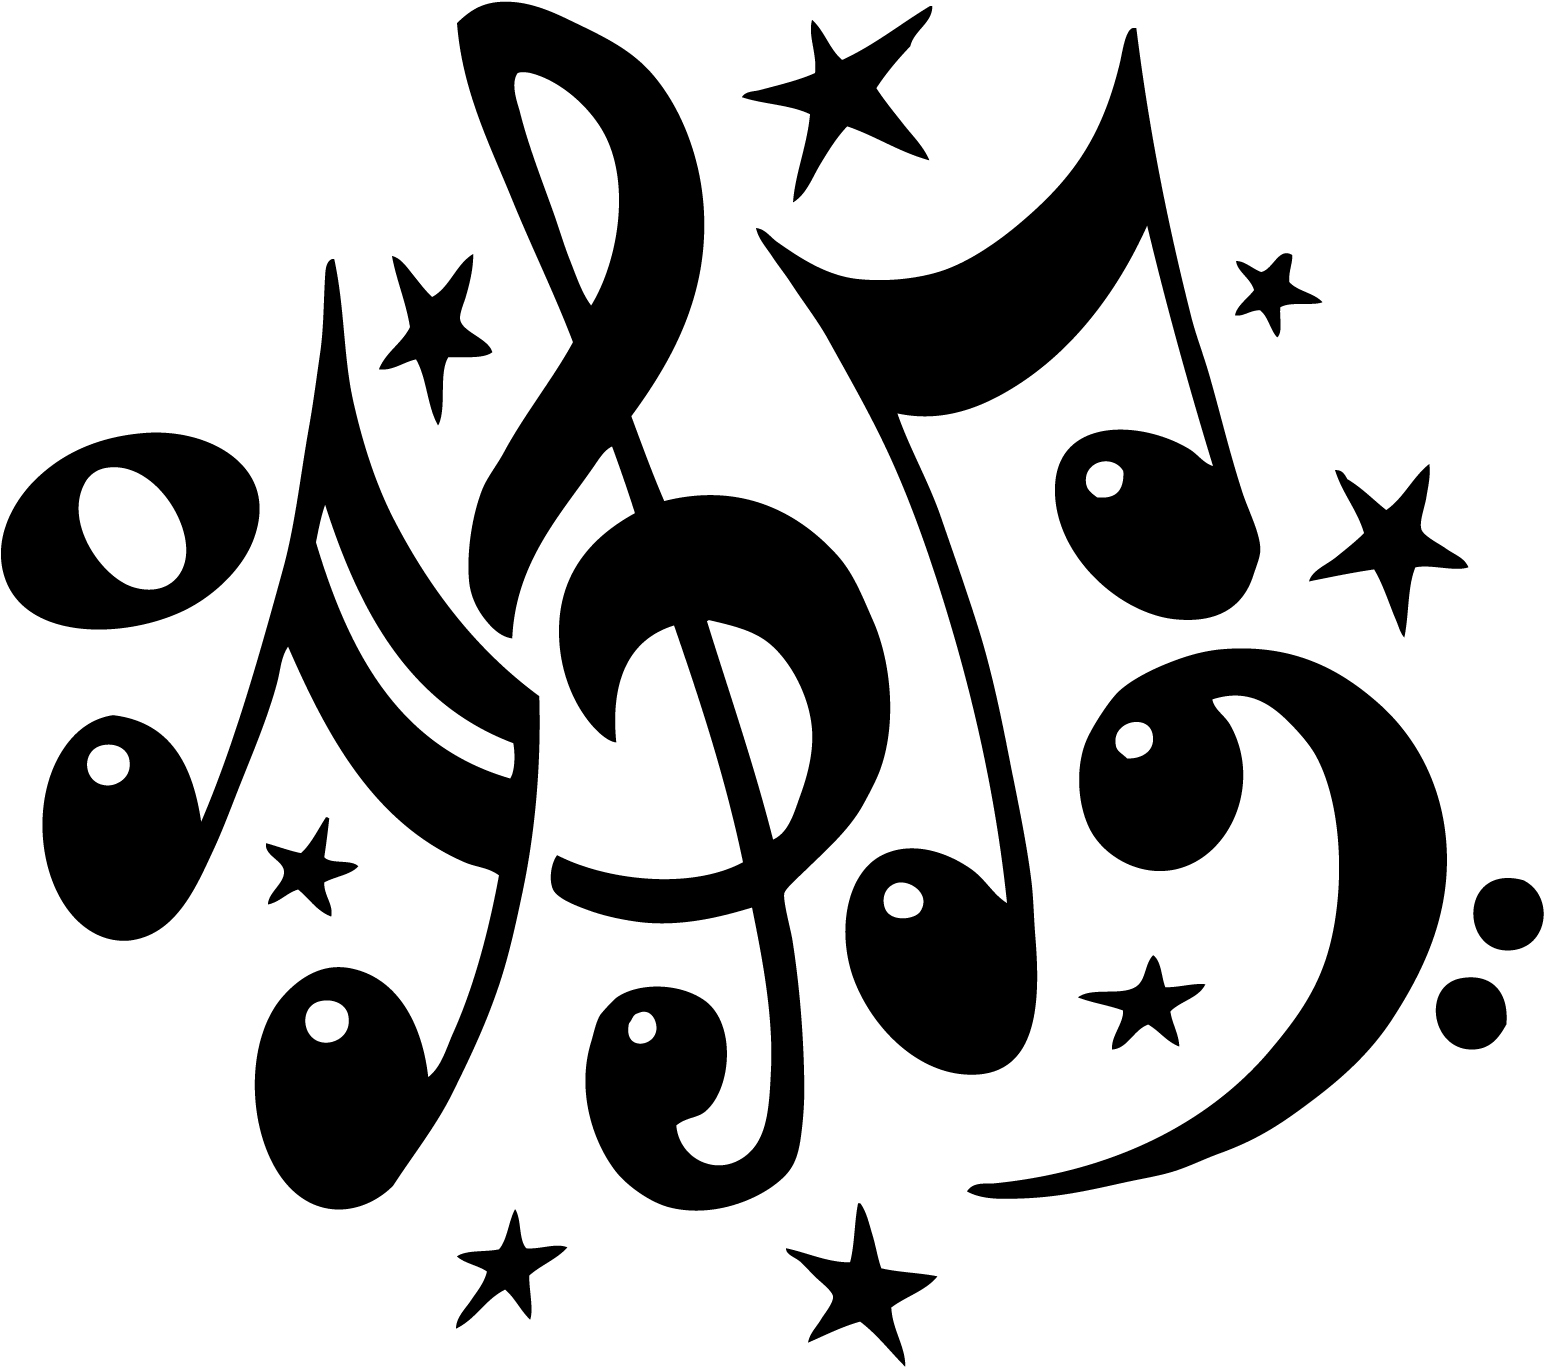 Music Notes Musical Notes Clip Art Free -Music notes musical notes clip art free music note clipart image 1 3 - Clipartix-11